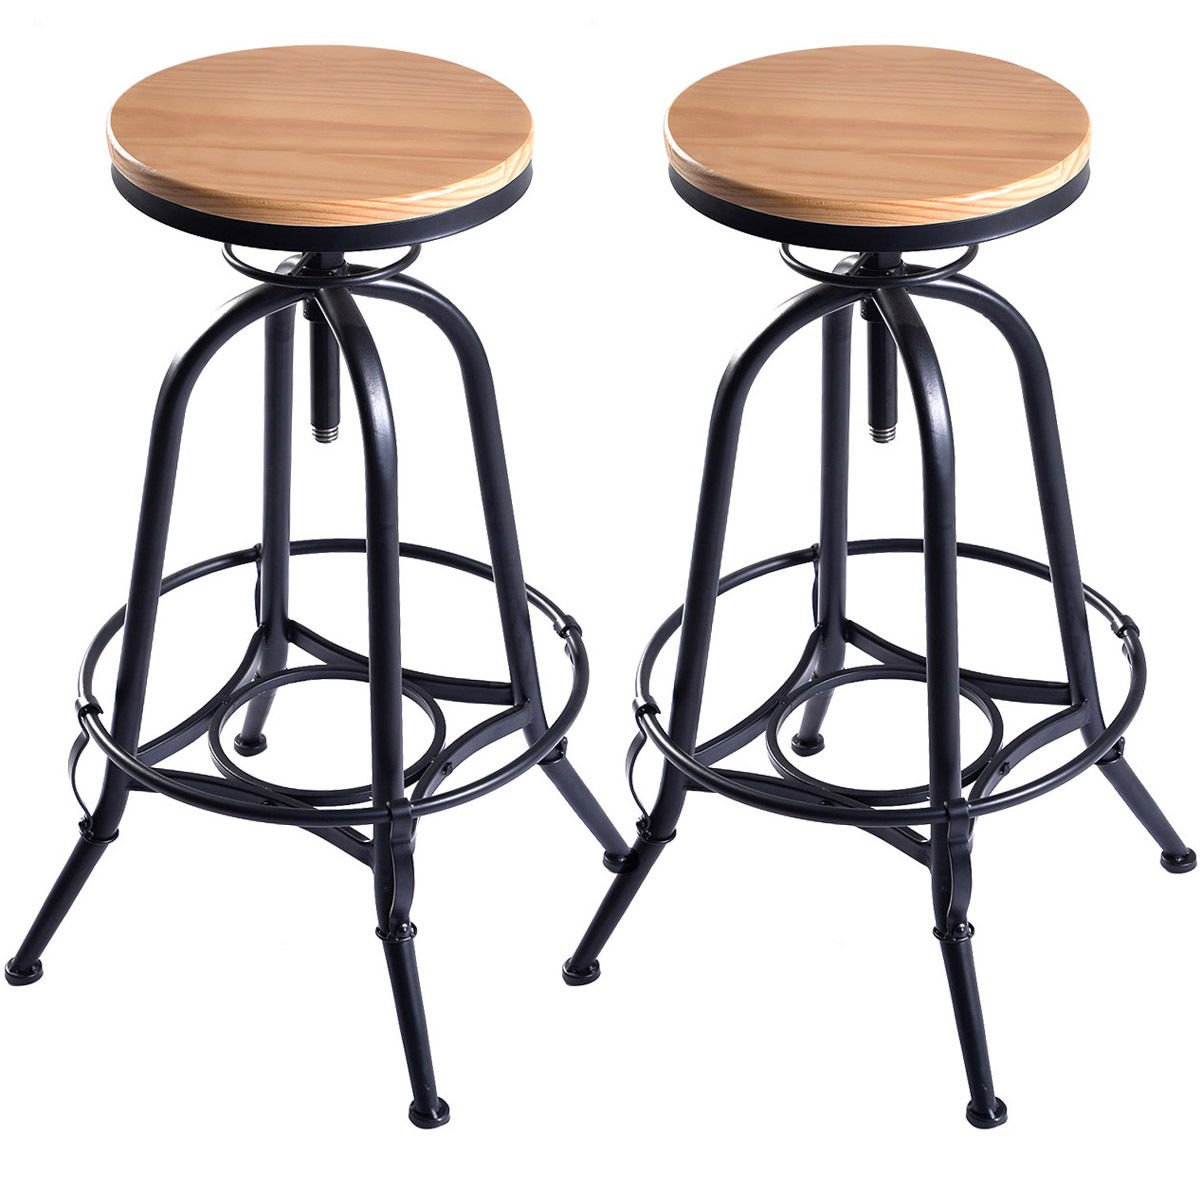 Costway Vintage Bar Stool Metal Frame Wood Top Adjustable Height Swivel Industrial (2Bar Stools)